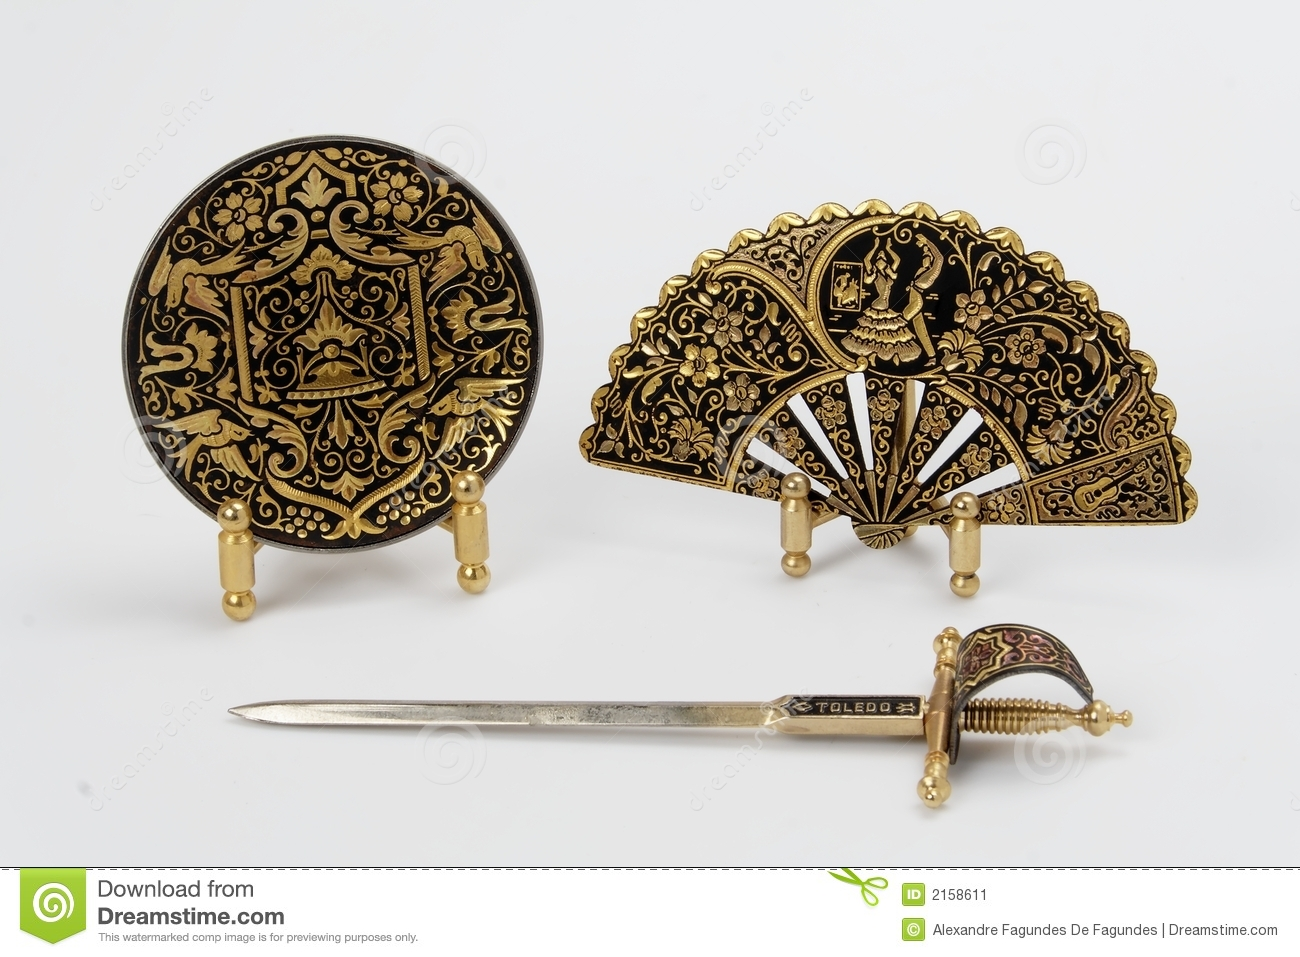 Spanish Sword, Plate and Fan